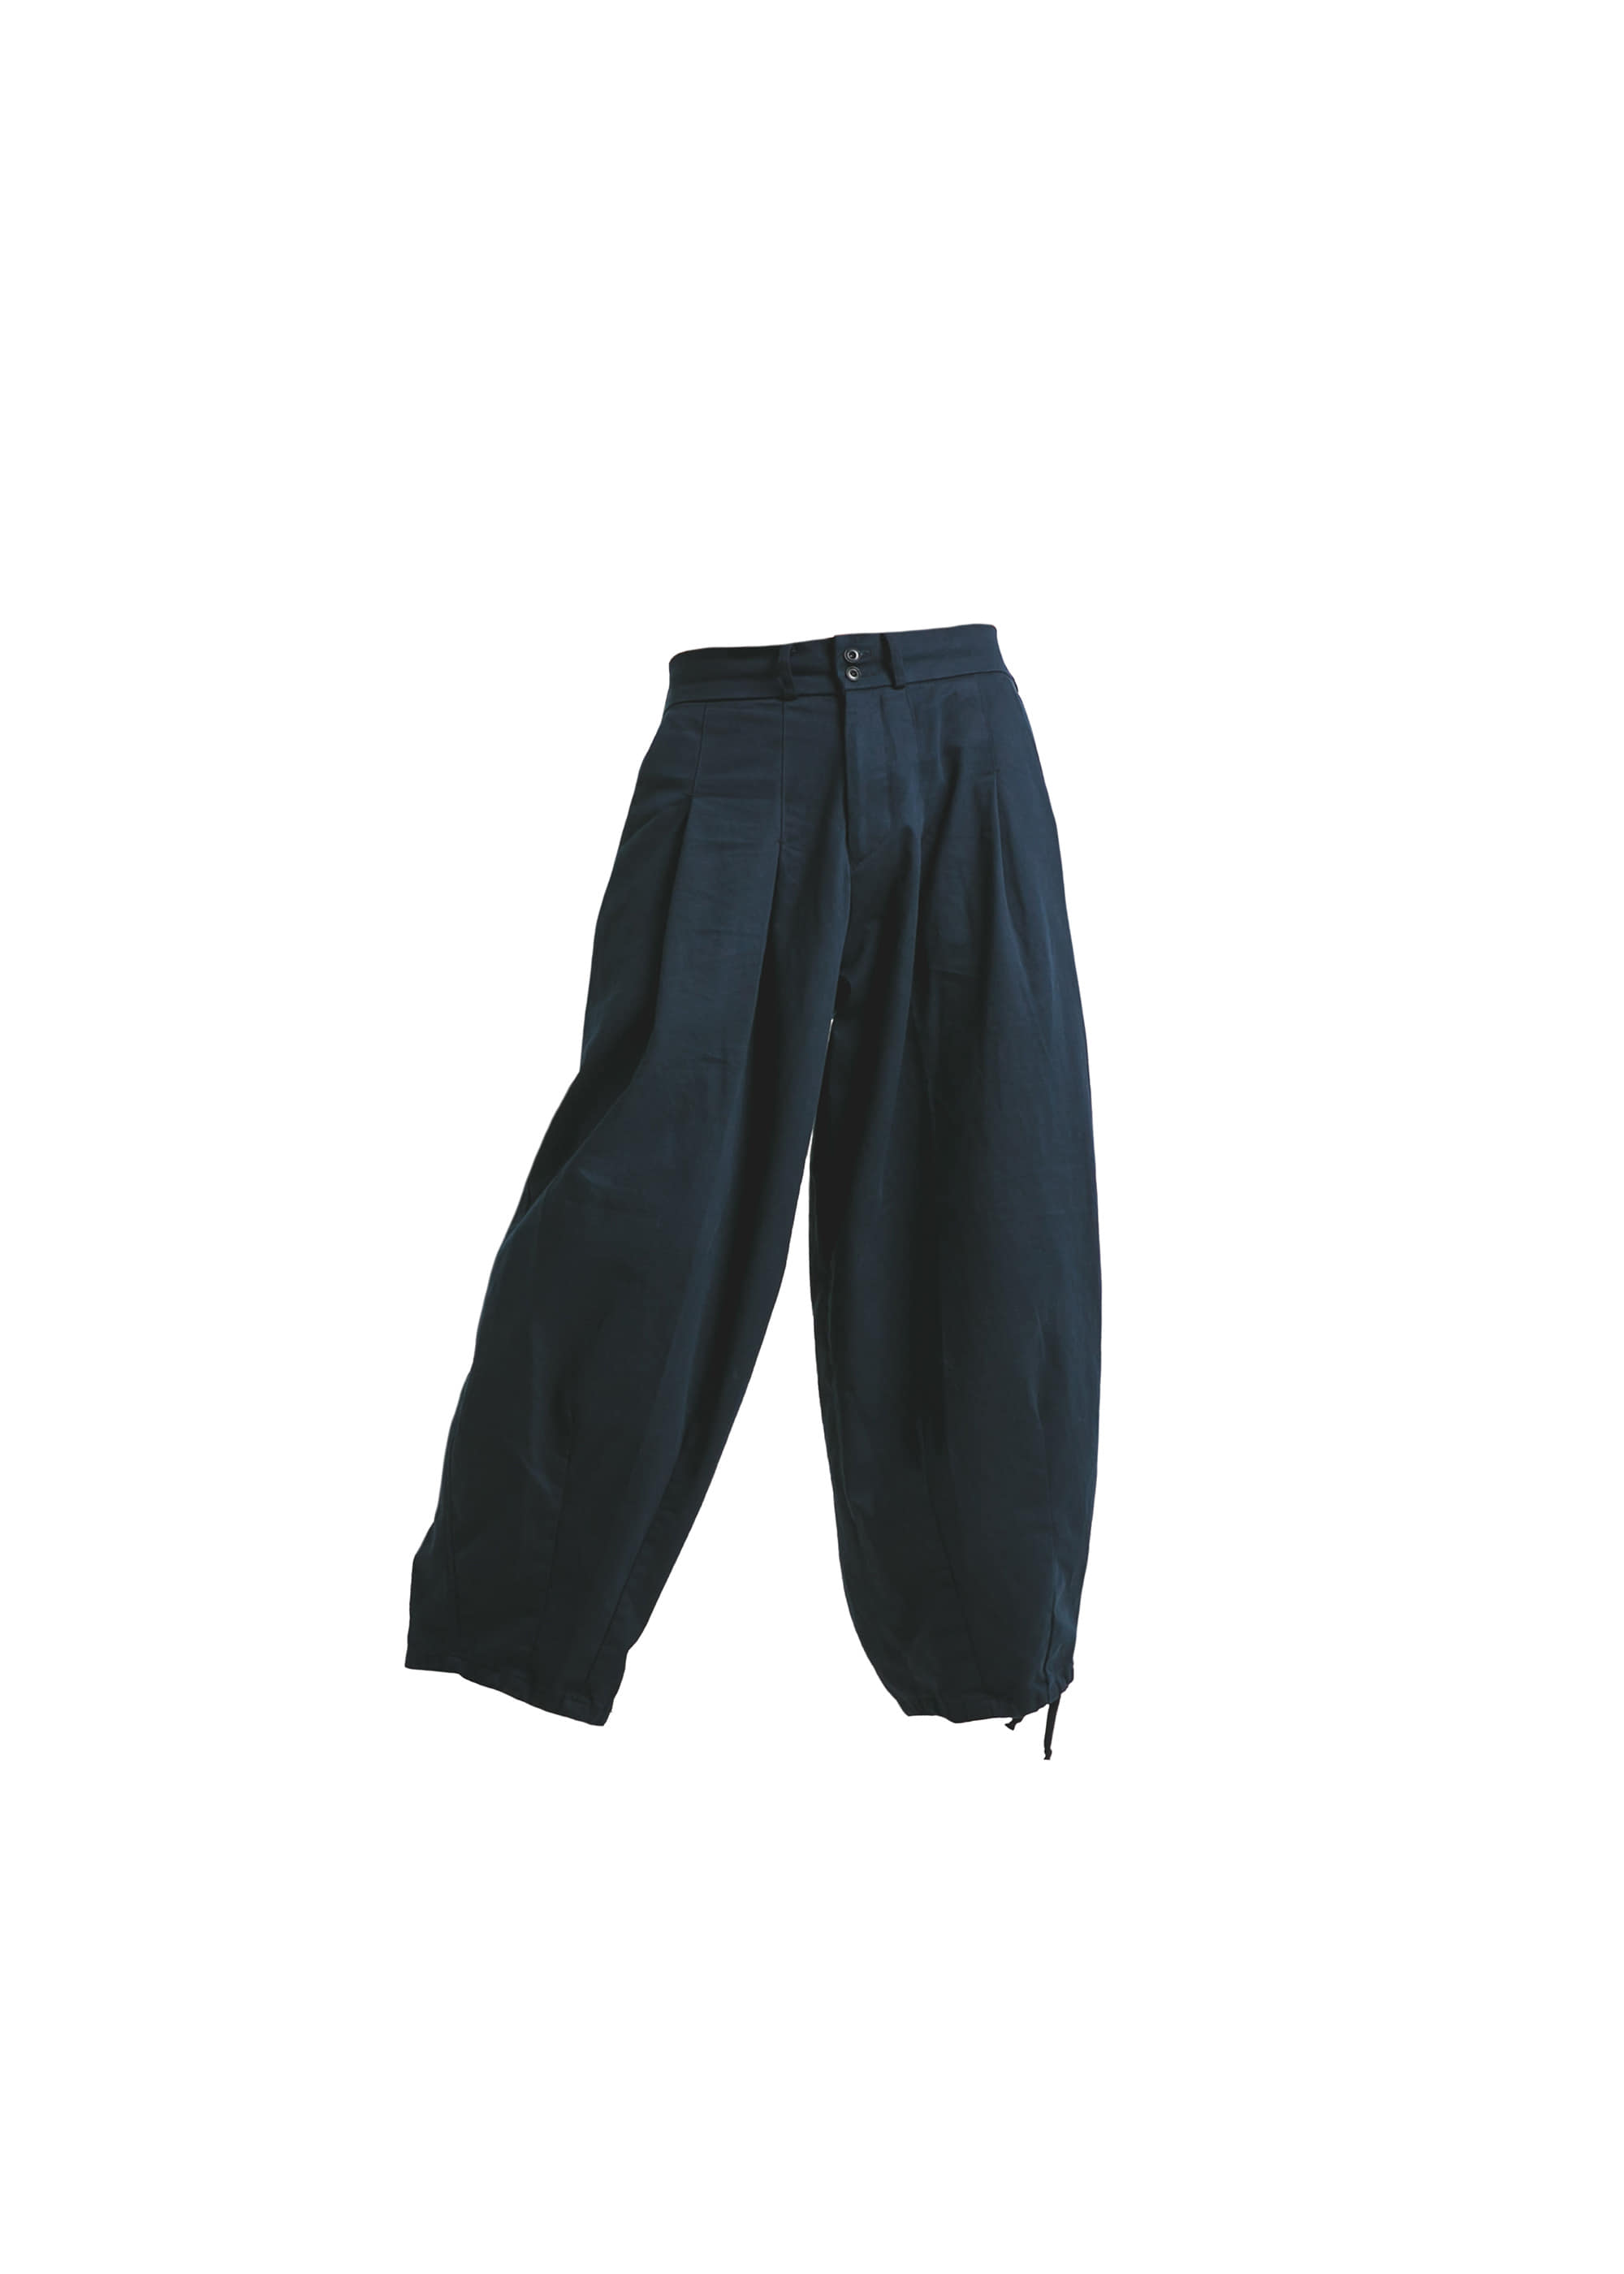 [AG] Cotton Easy Balloon Pants -Navy [Pre-Order]